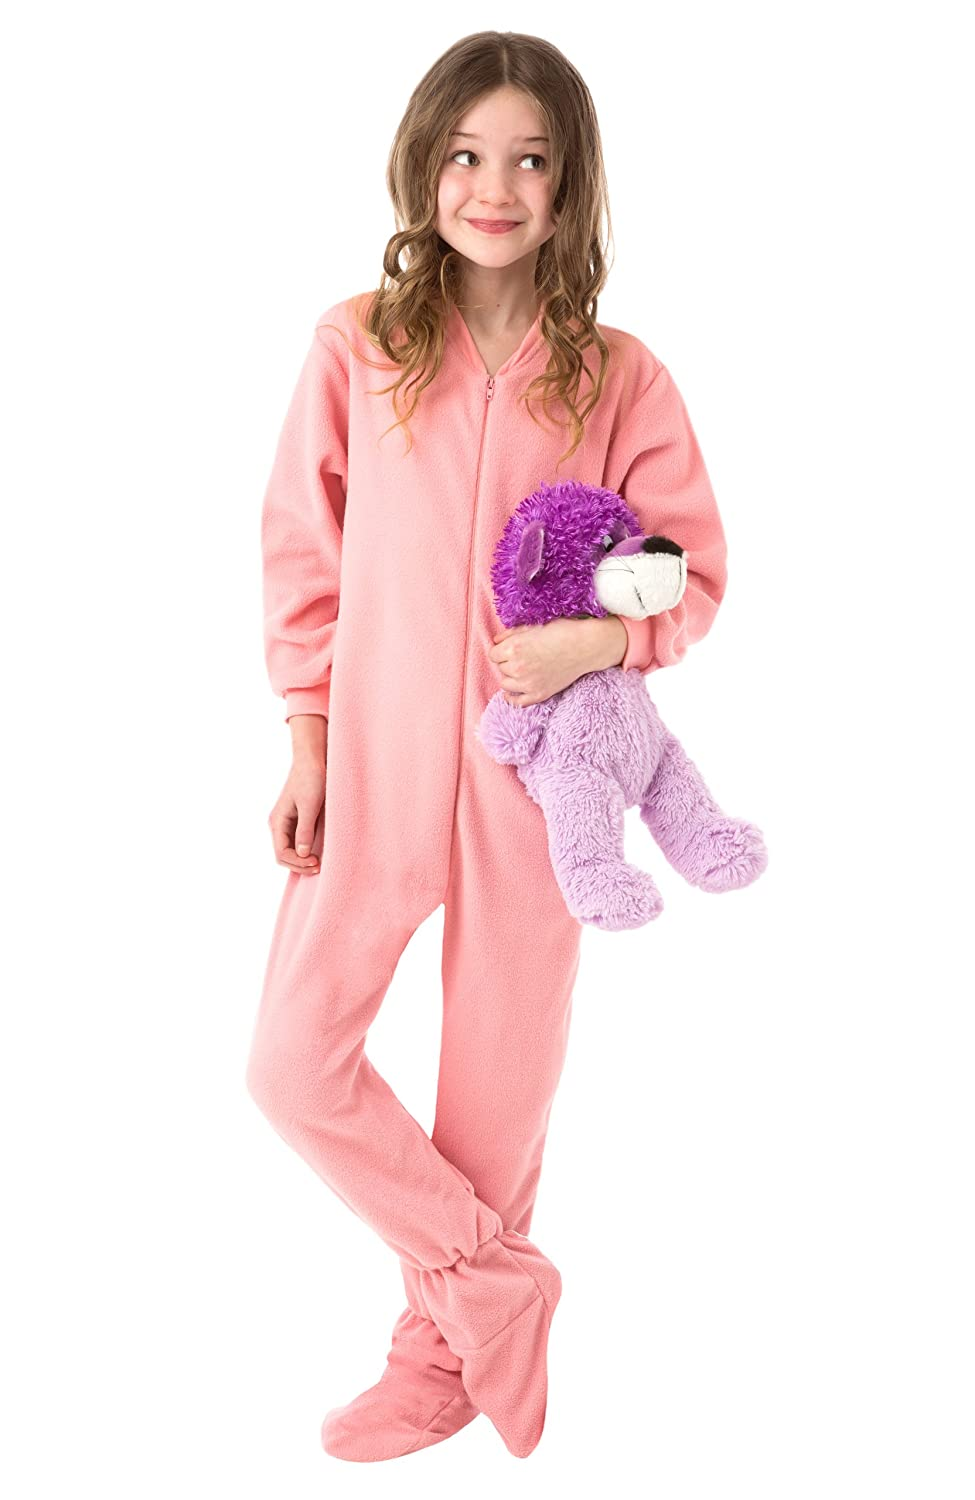 Amazon.com: Big Feet PJs Big Girls Kids Pink Fleece Footed Pajamas Onesie Footie Pajamas: Clothing